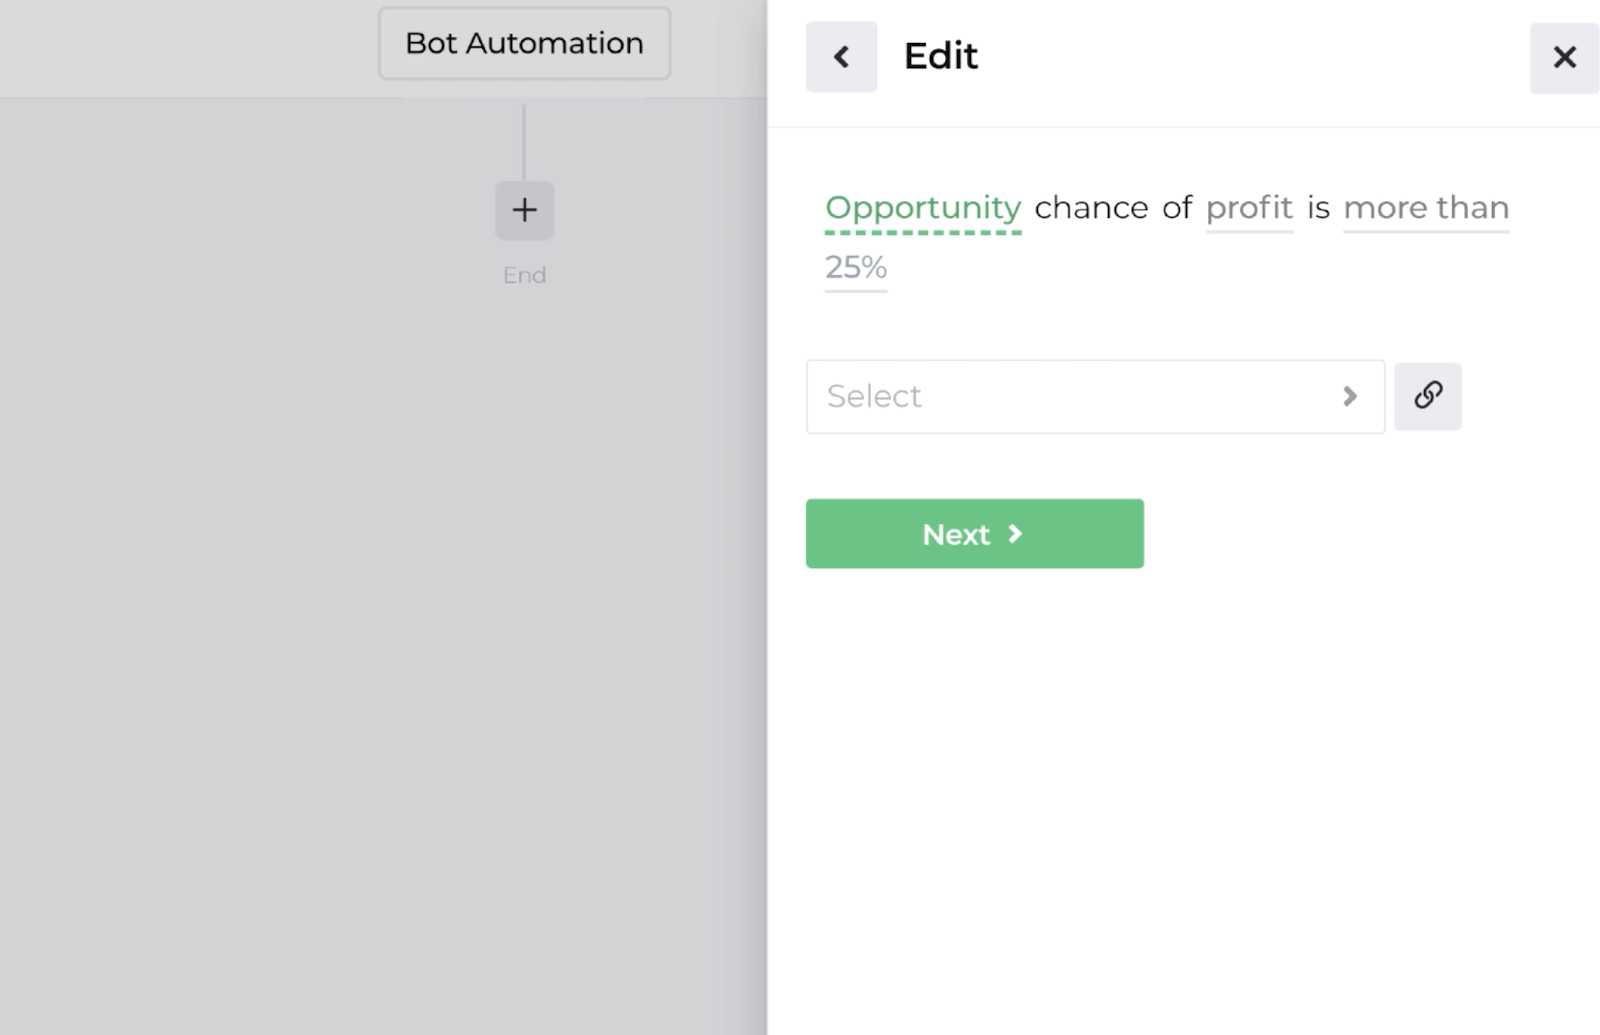 Screenshot displaying the decision recipe for evaluating opportunity probabilities